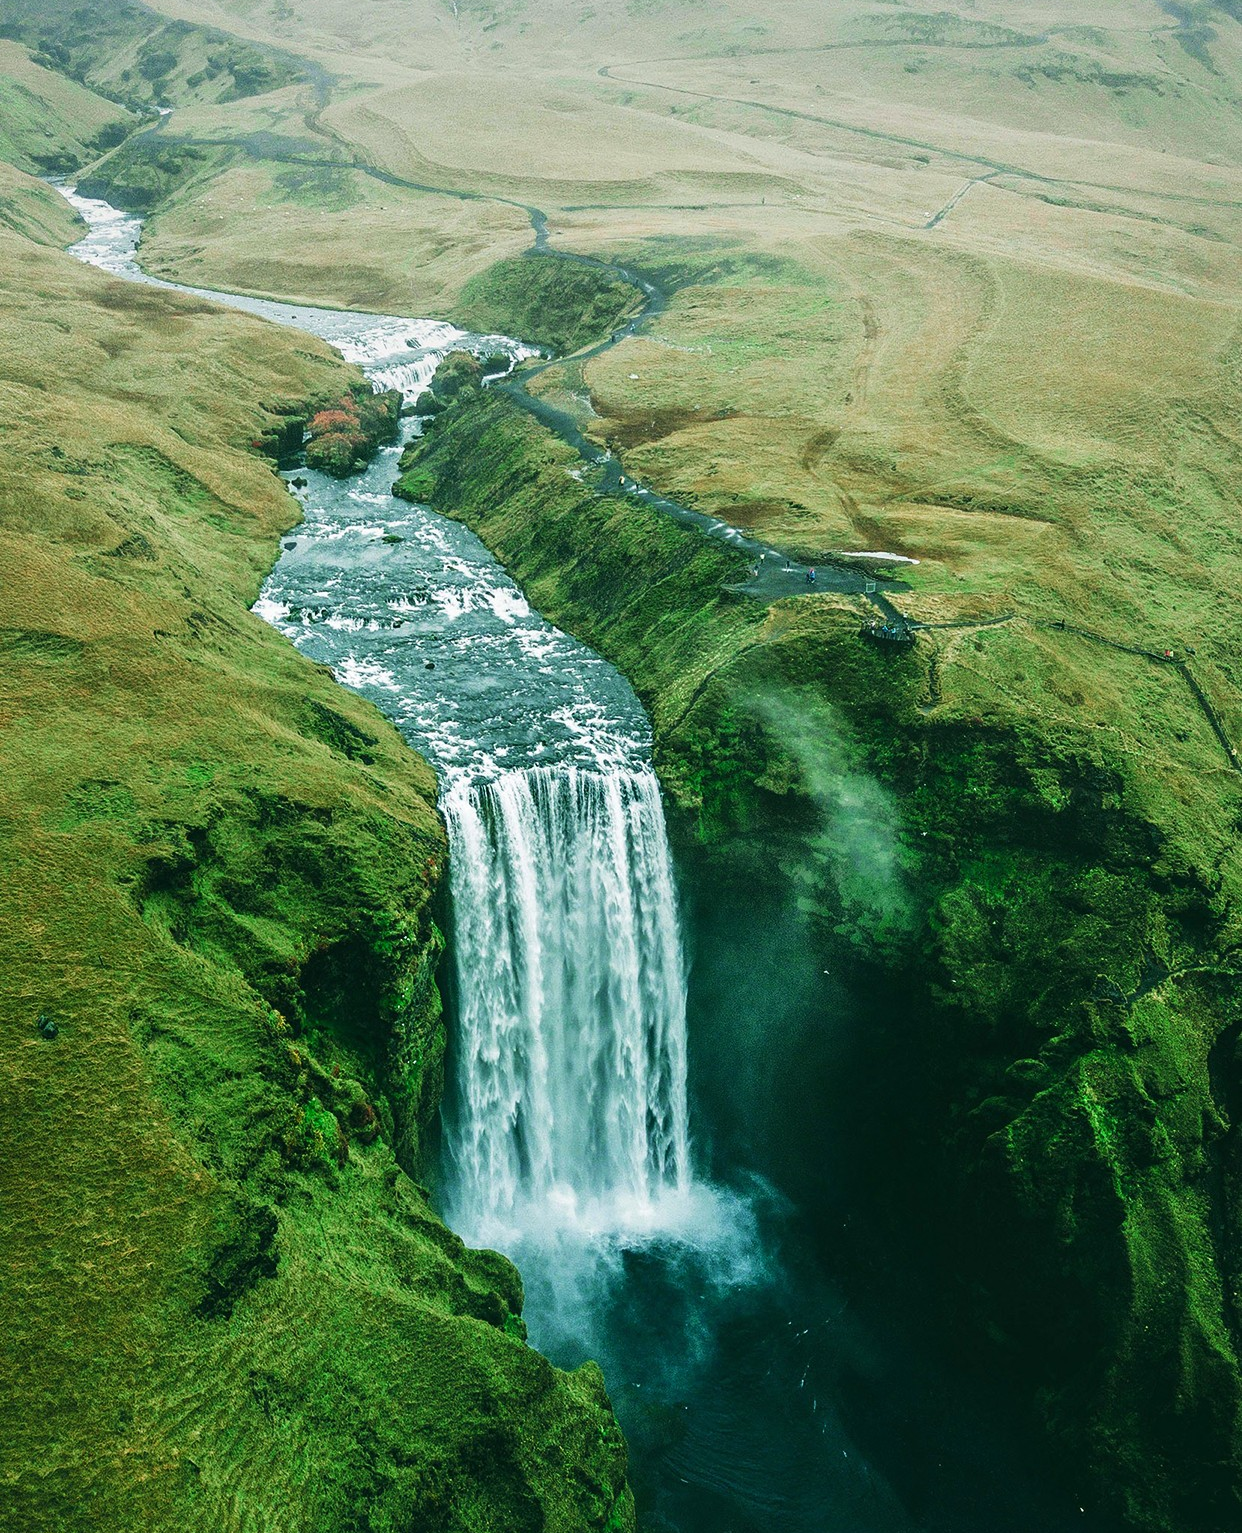 Chasing Waterfalls Download the Vellum App on iOS to get